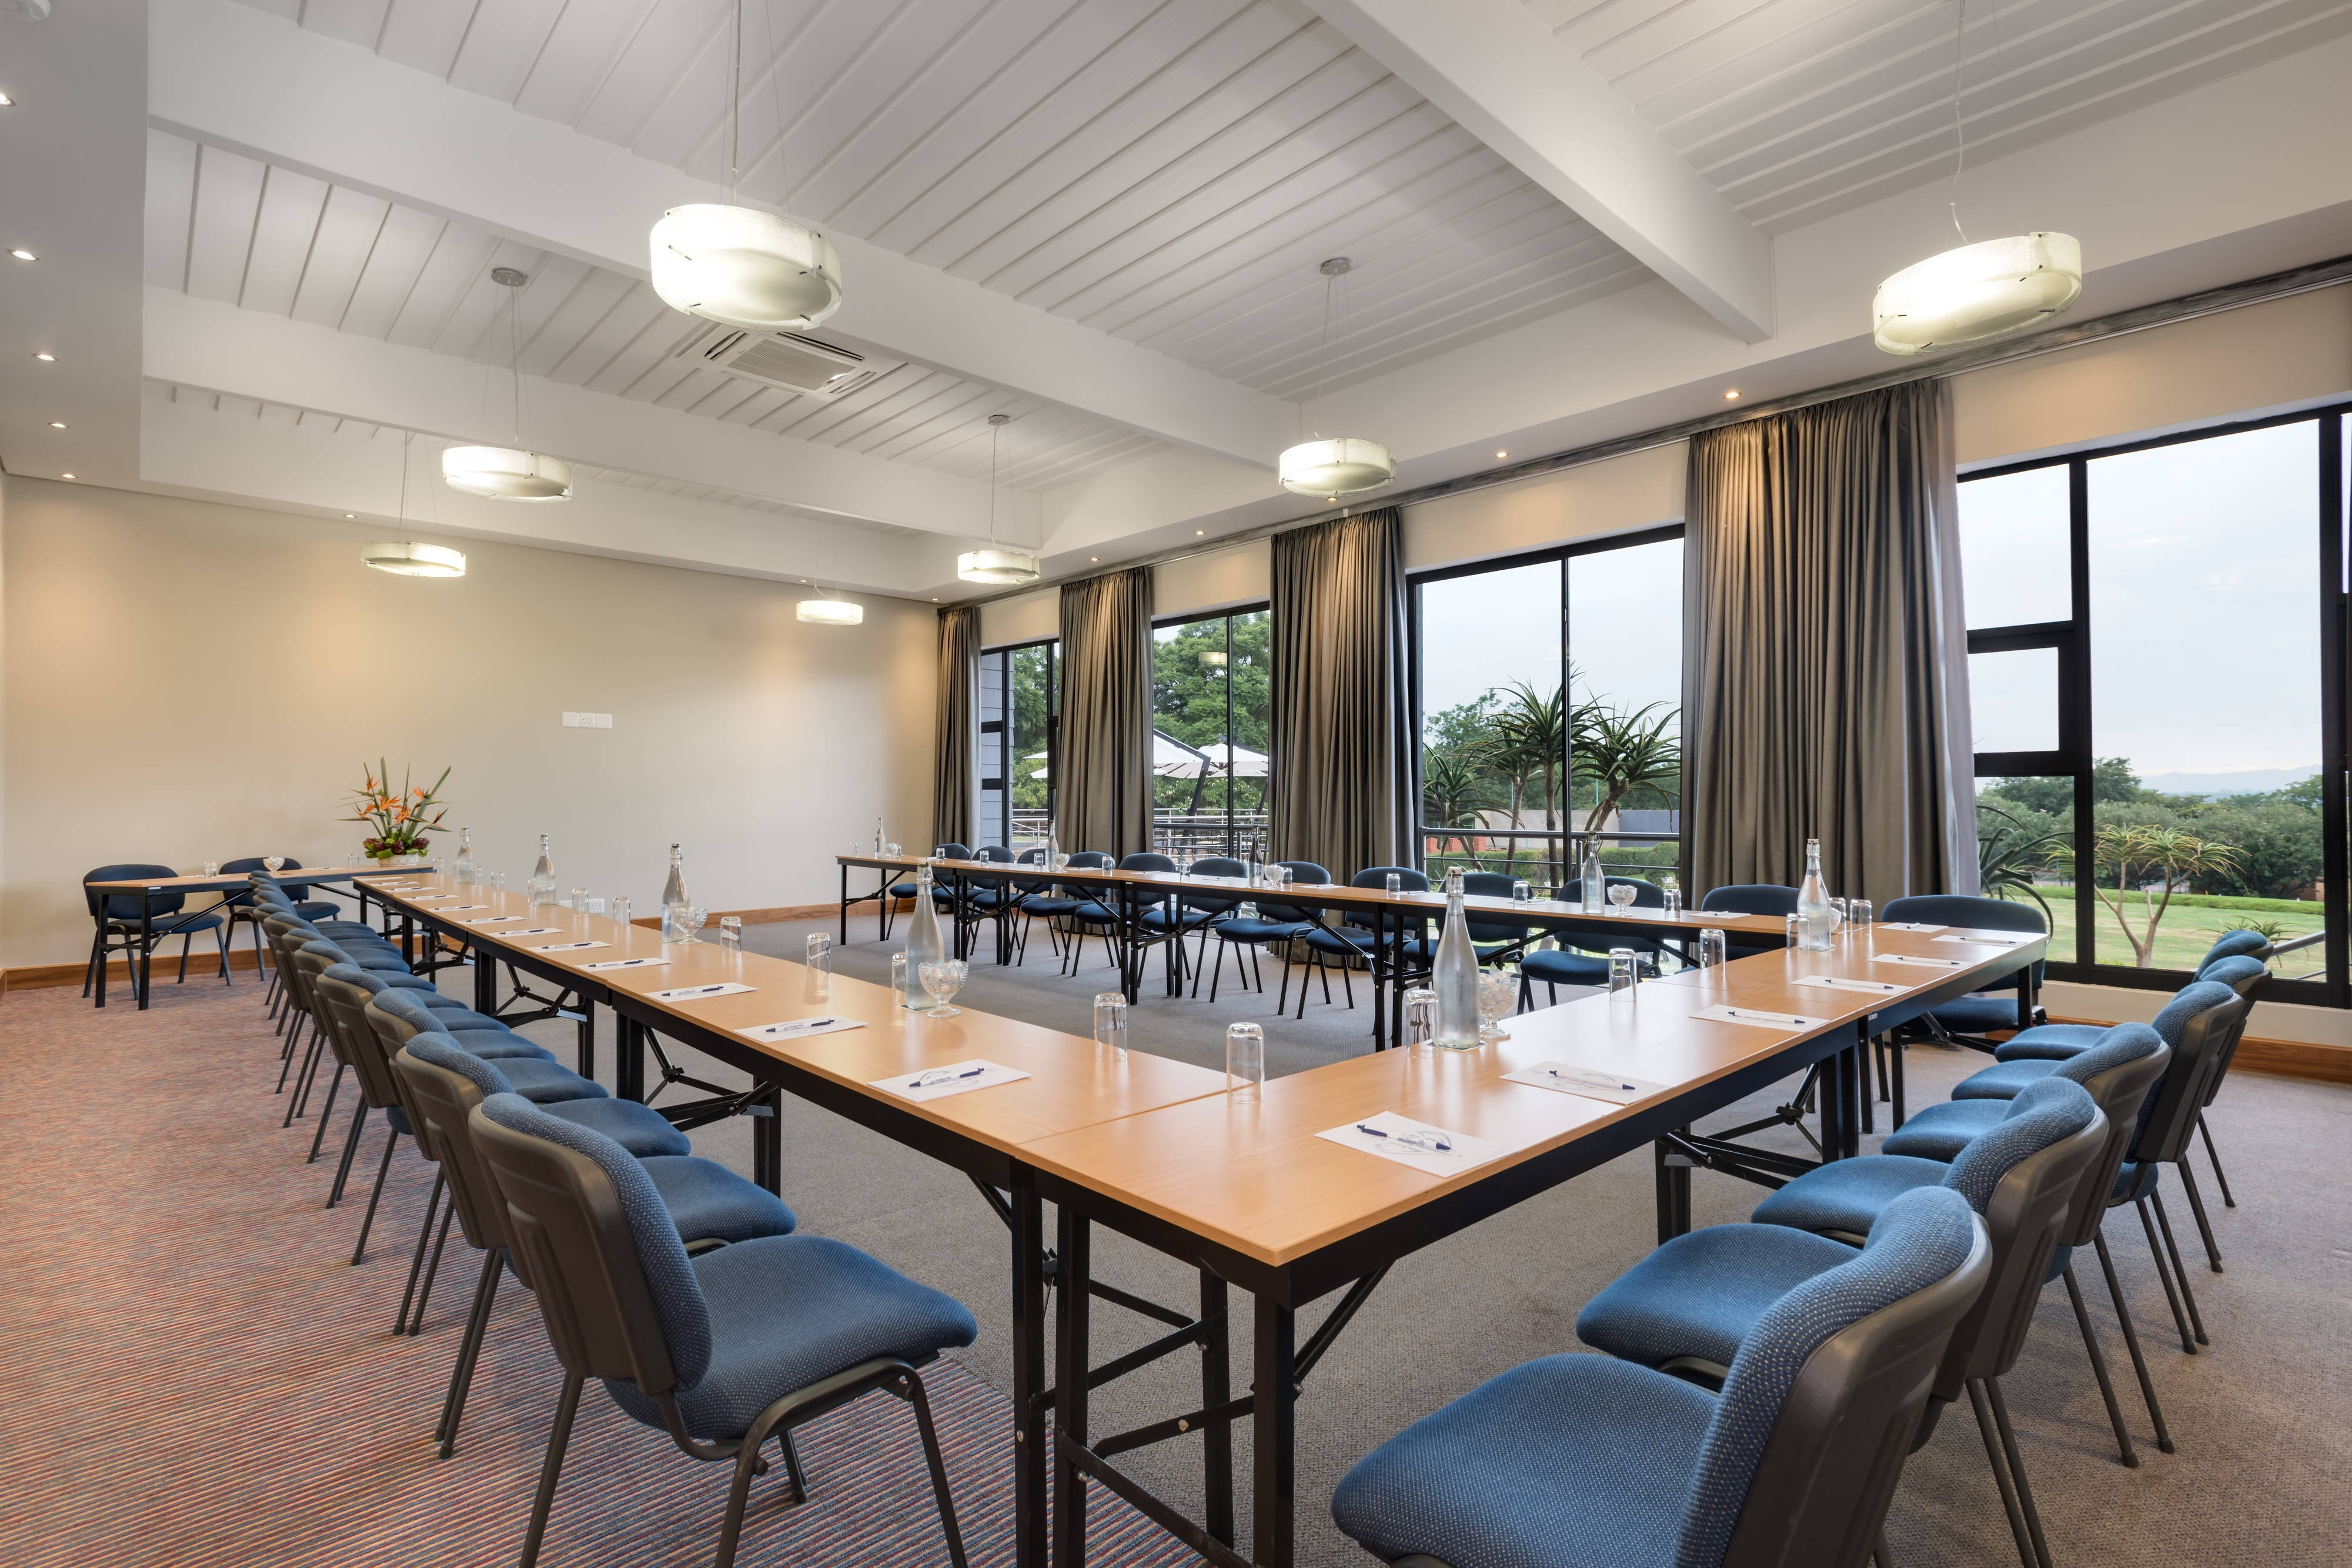 Protea Hotel Hunters Rest Avenue Conference Room